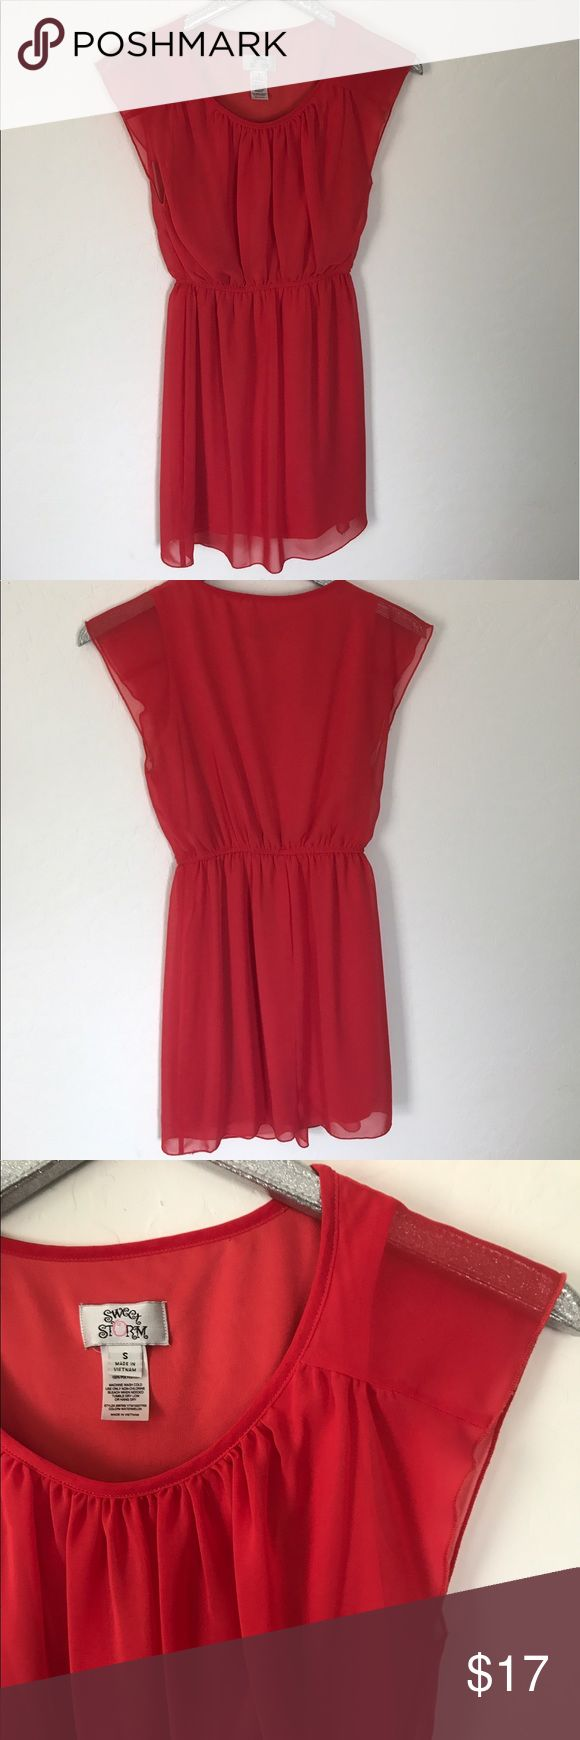 Short Sleeve Salmon Dress This dress features as elastic waist and has a nice flowy fit! Perfect for a brunch date or church! Sweet Storm Dresses